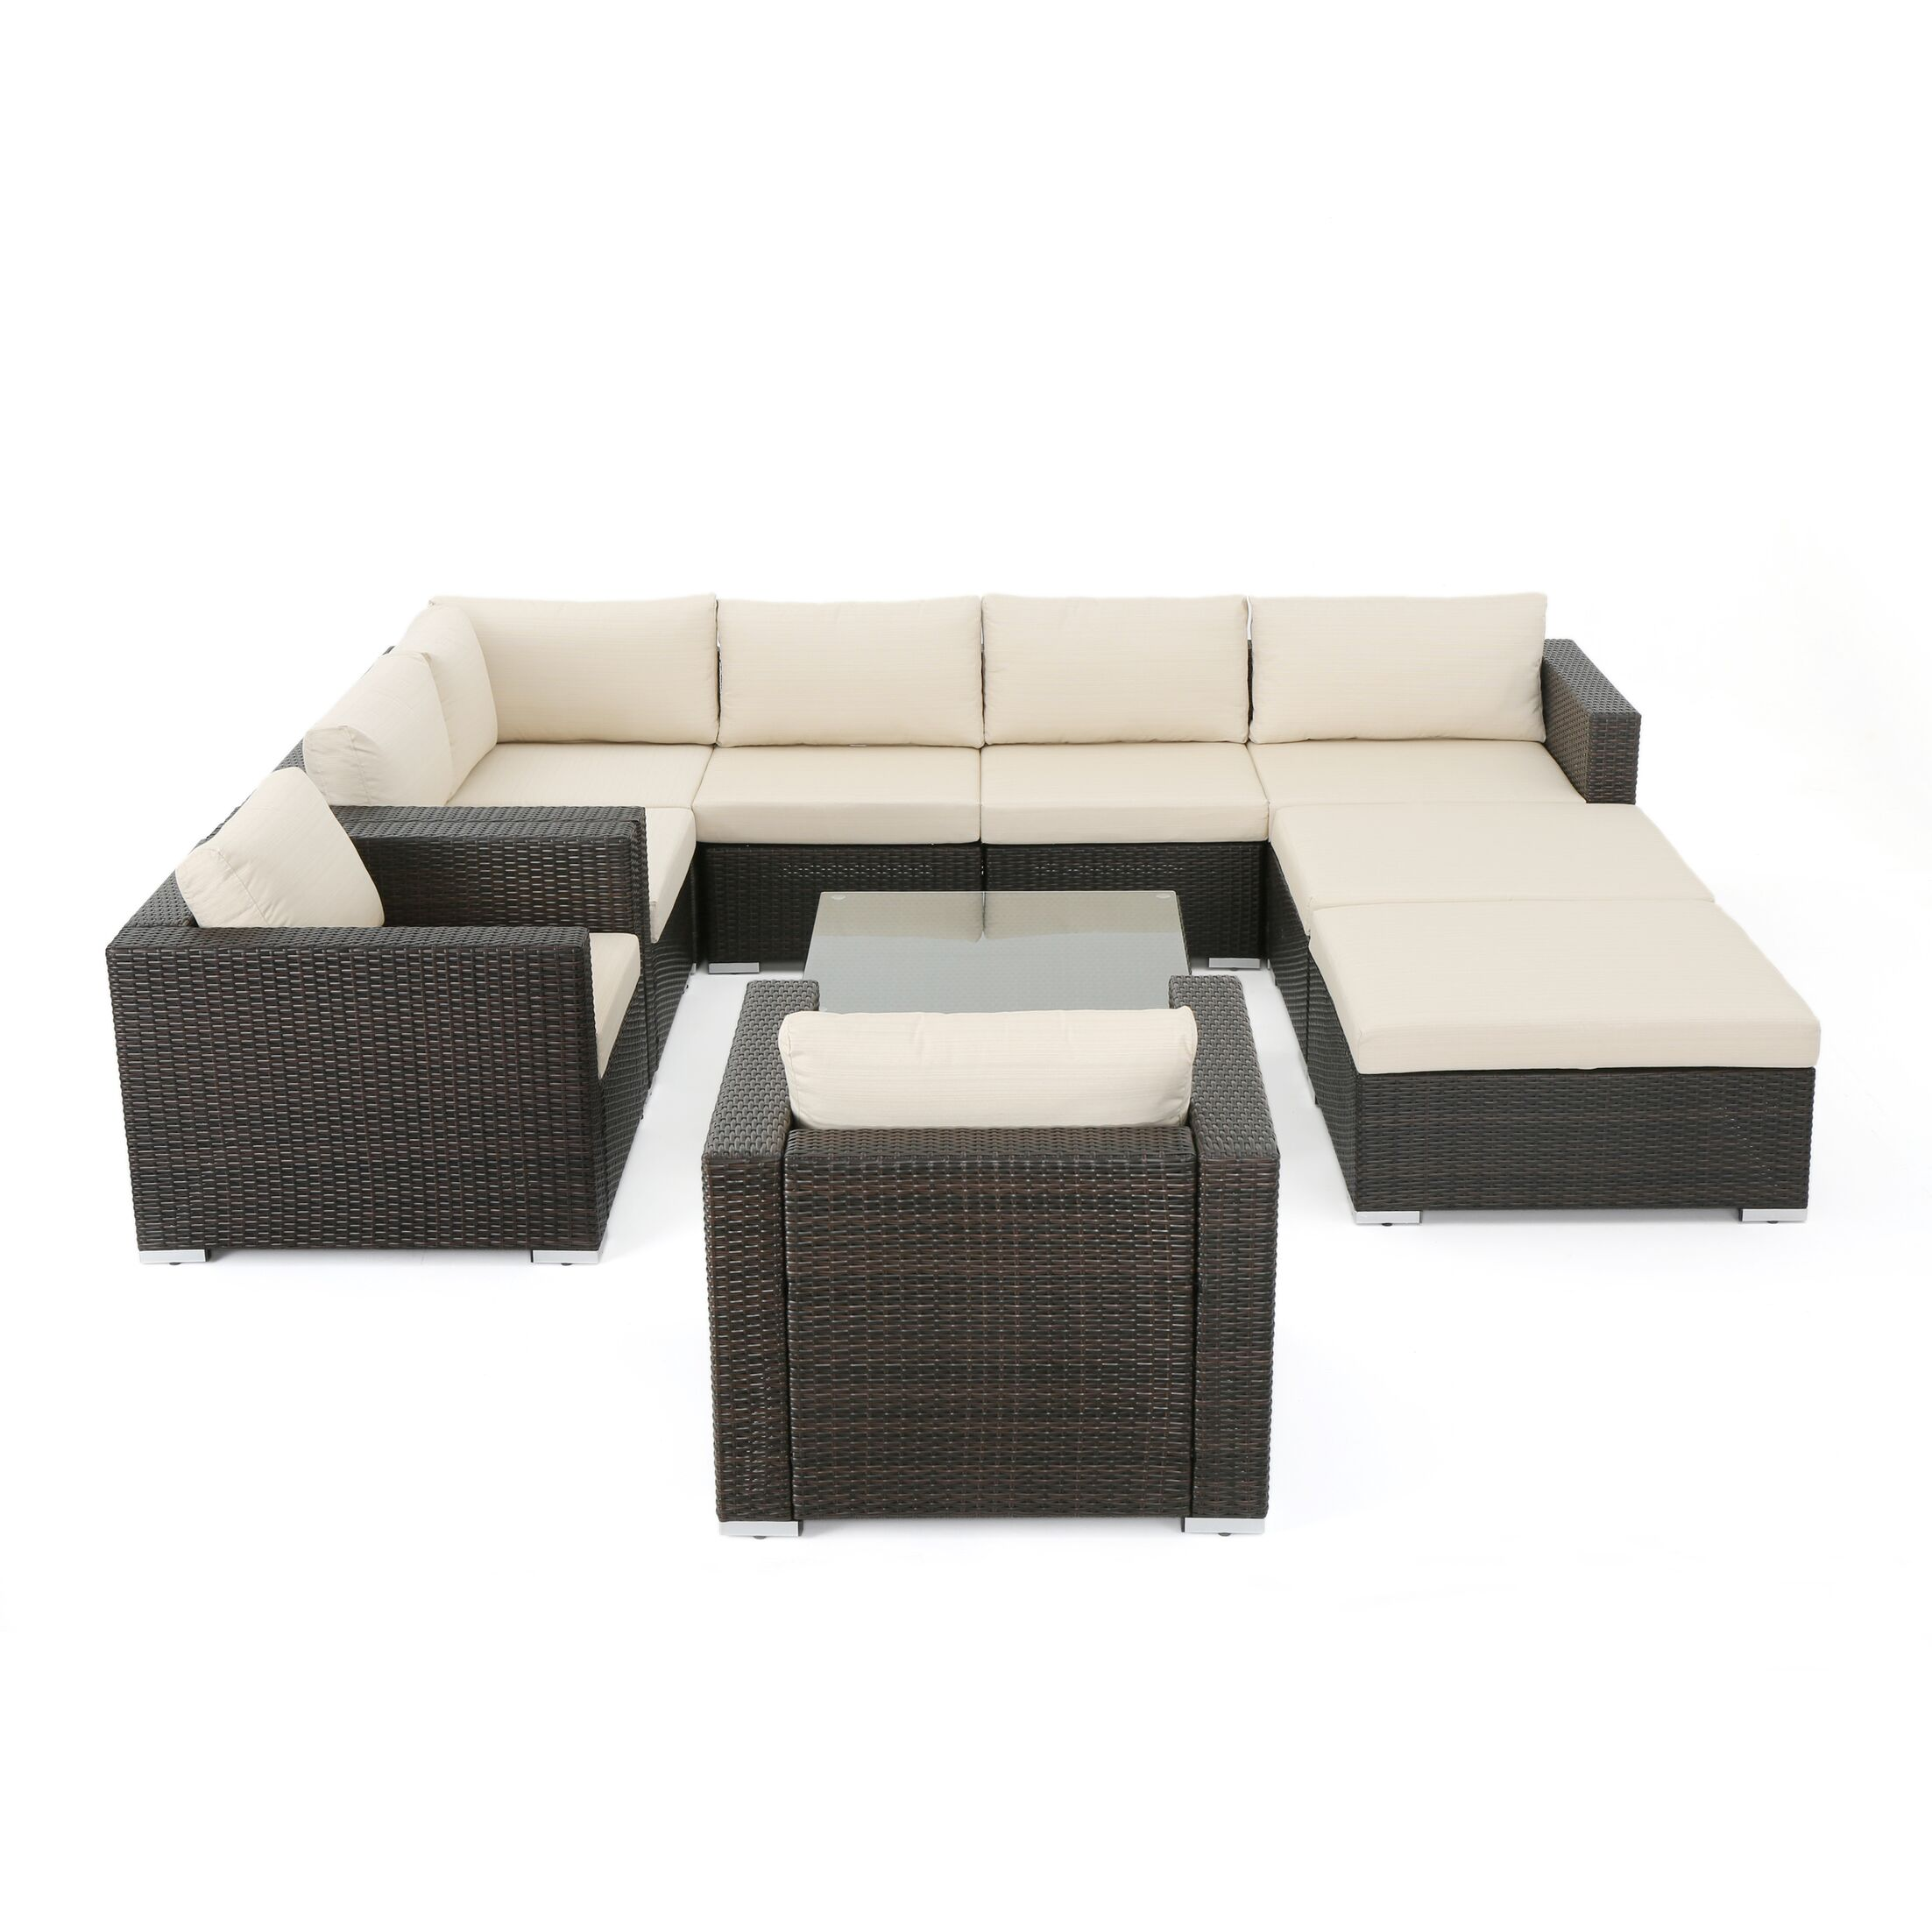 Aftonshire 10 Piece Rattan Sectional Seating Group with Cushions